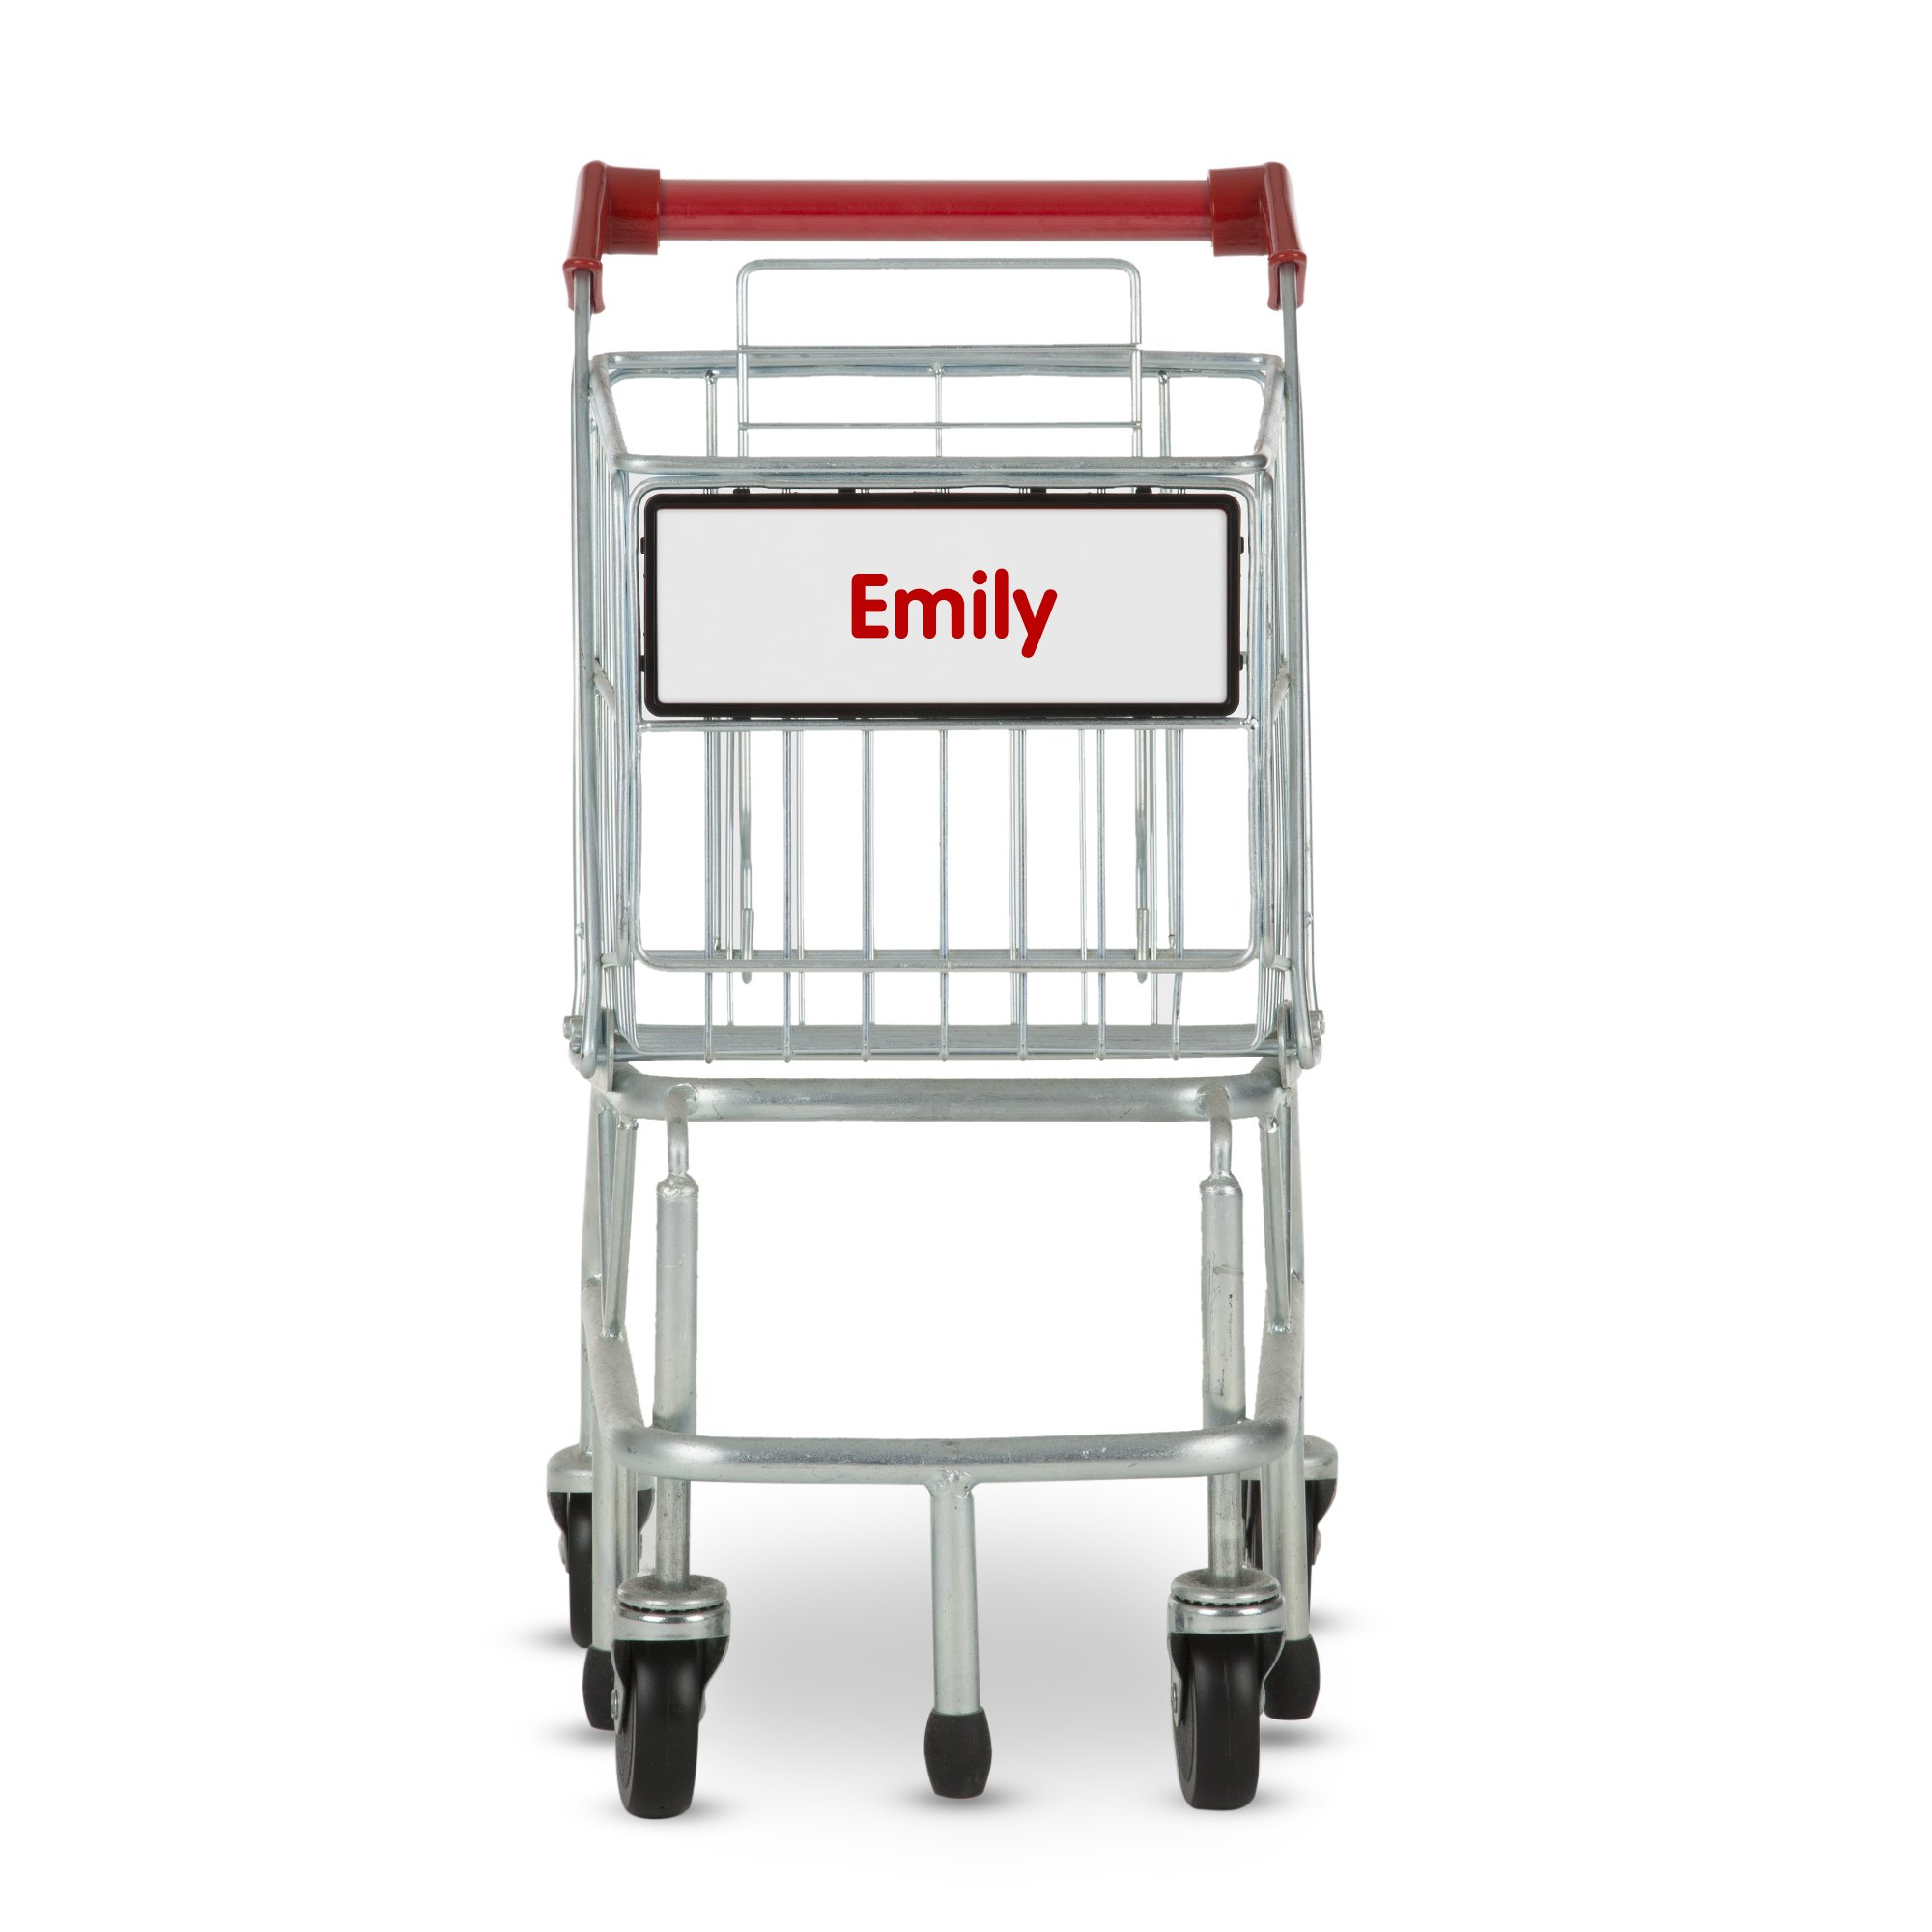 Melissa & Doug Personalized Toy Shopping Cart with Sturdy Metal Frame by Melissa & Doug